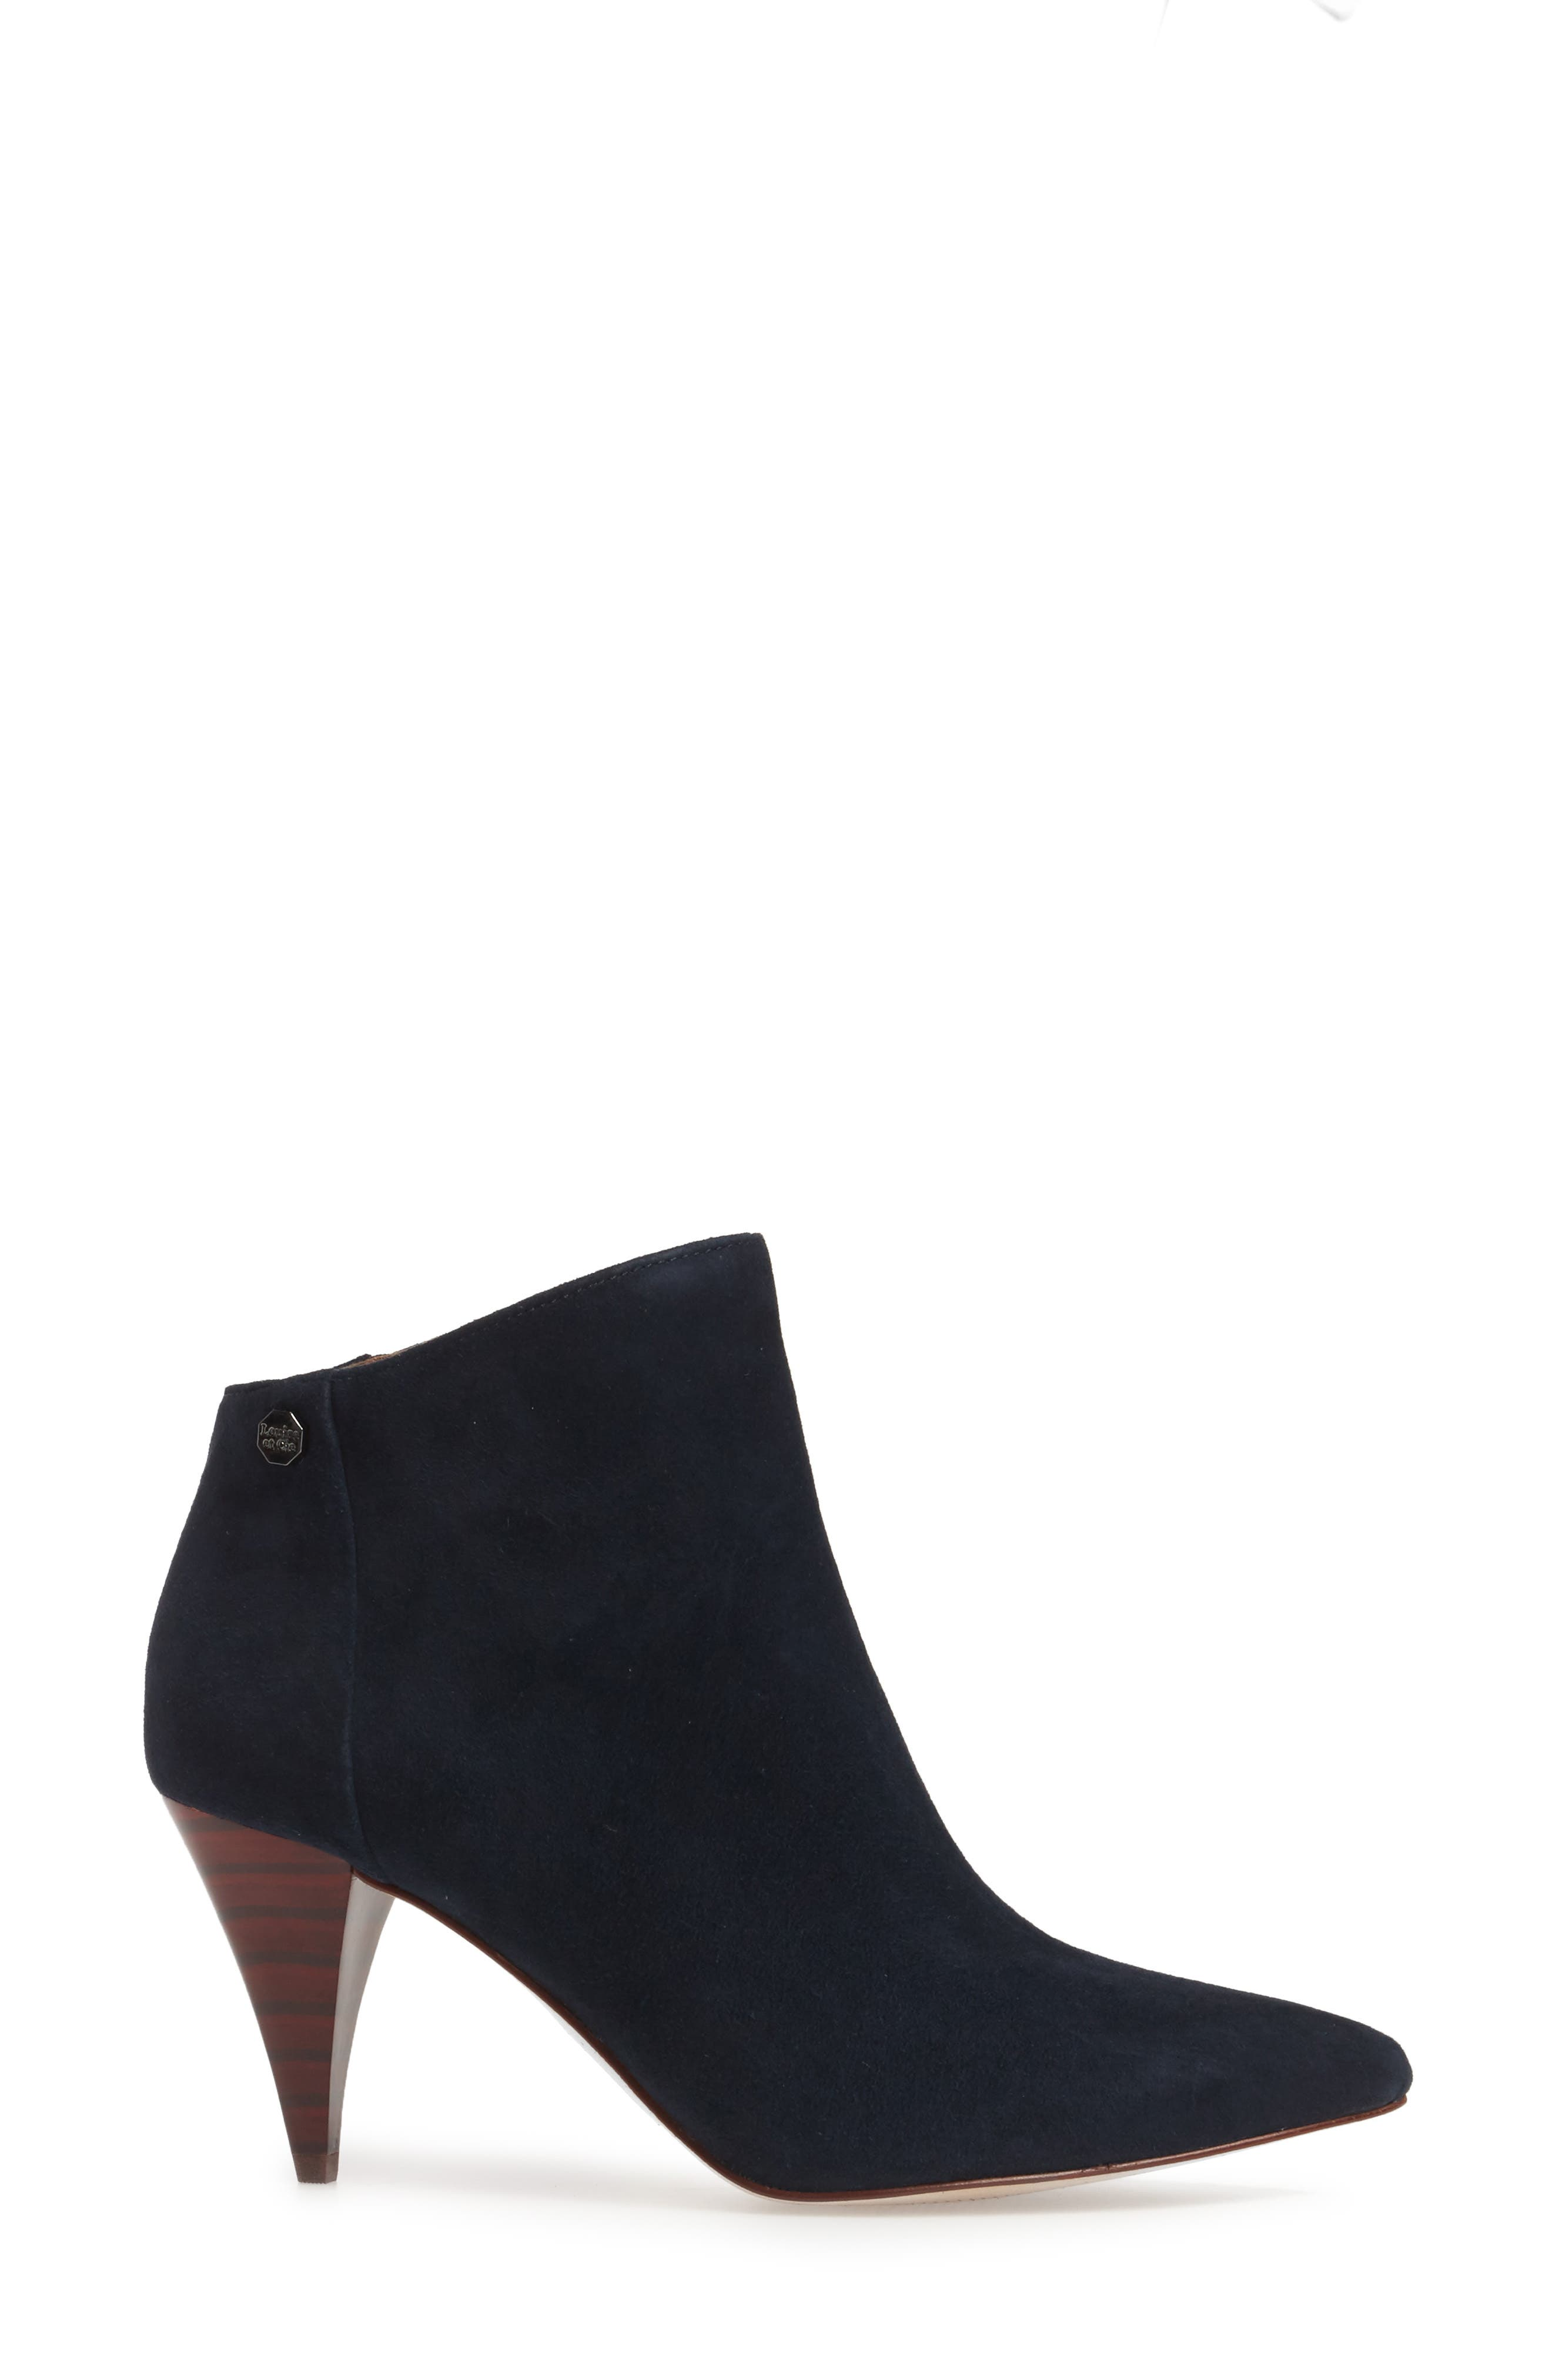 Alternate Image 3  - Louise et Cie Warley Pointy Toe Bootie (Women)